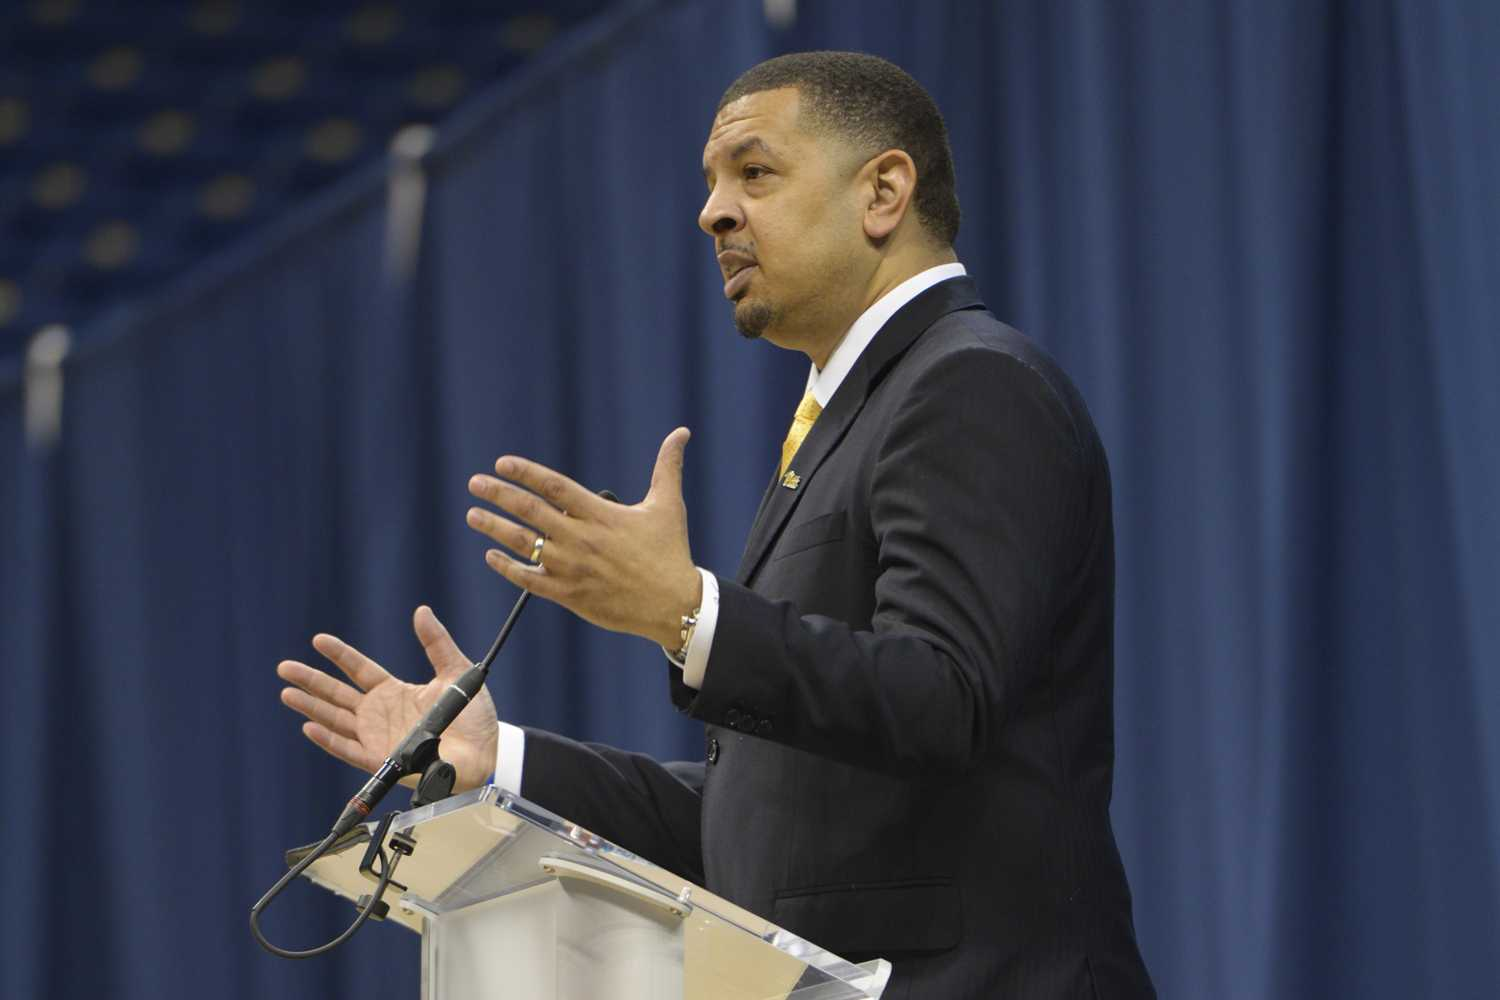 Pitt's new men's basketball head coach, Jeff Capel, speaks at the Petersen Events Center Wednesday afternoon. (Photo by Mackenzie Rodrigues | Contributing Editor)